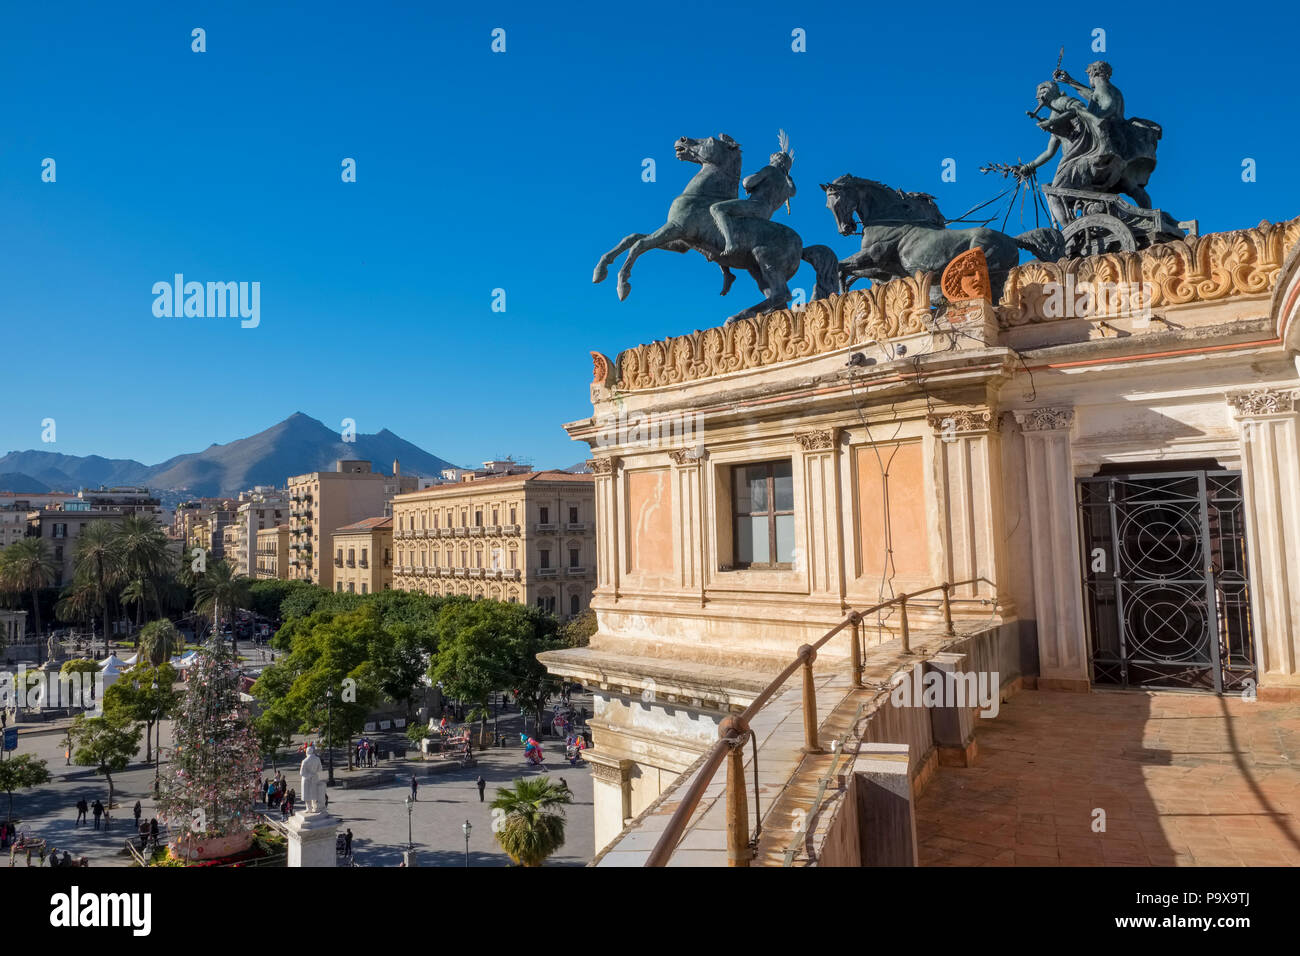 The view from the Politeama Theatre, Palermo, Sicily, showing central Piazza Politeama and the bronze Quadriga on the Teatro Politeama - Stock Image